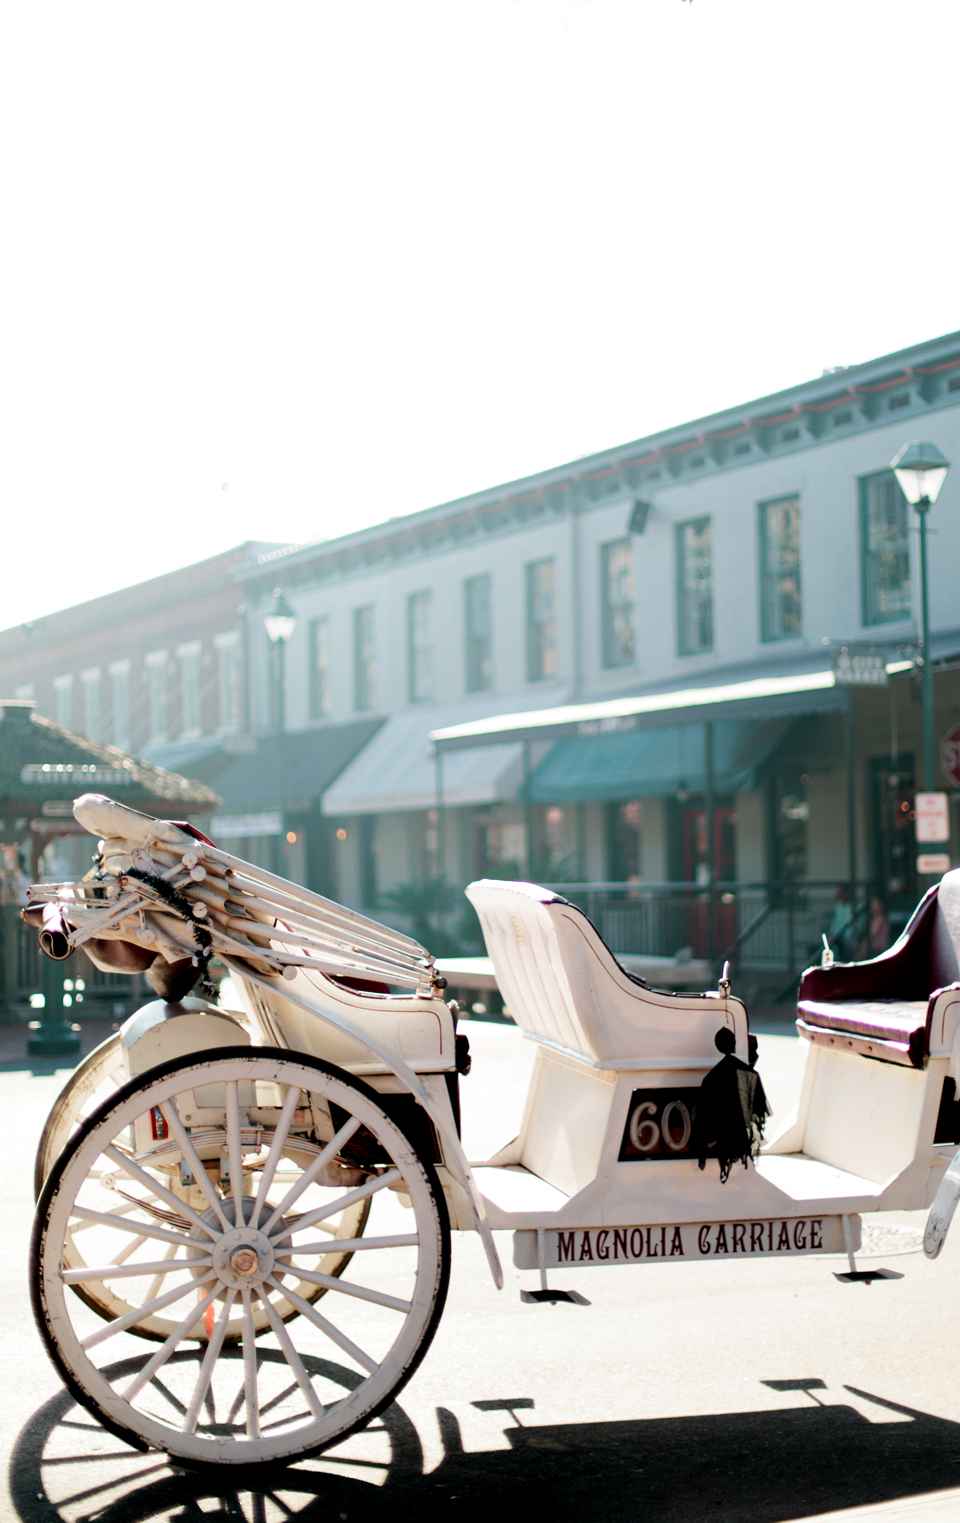 Image of downtown historic Savannah, Georgia.  This is a horse drawn carriage for local tours.